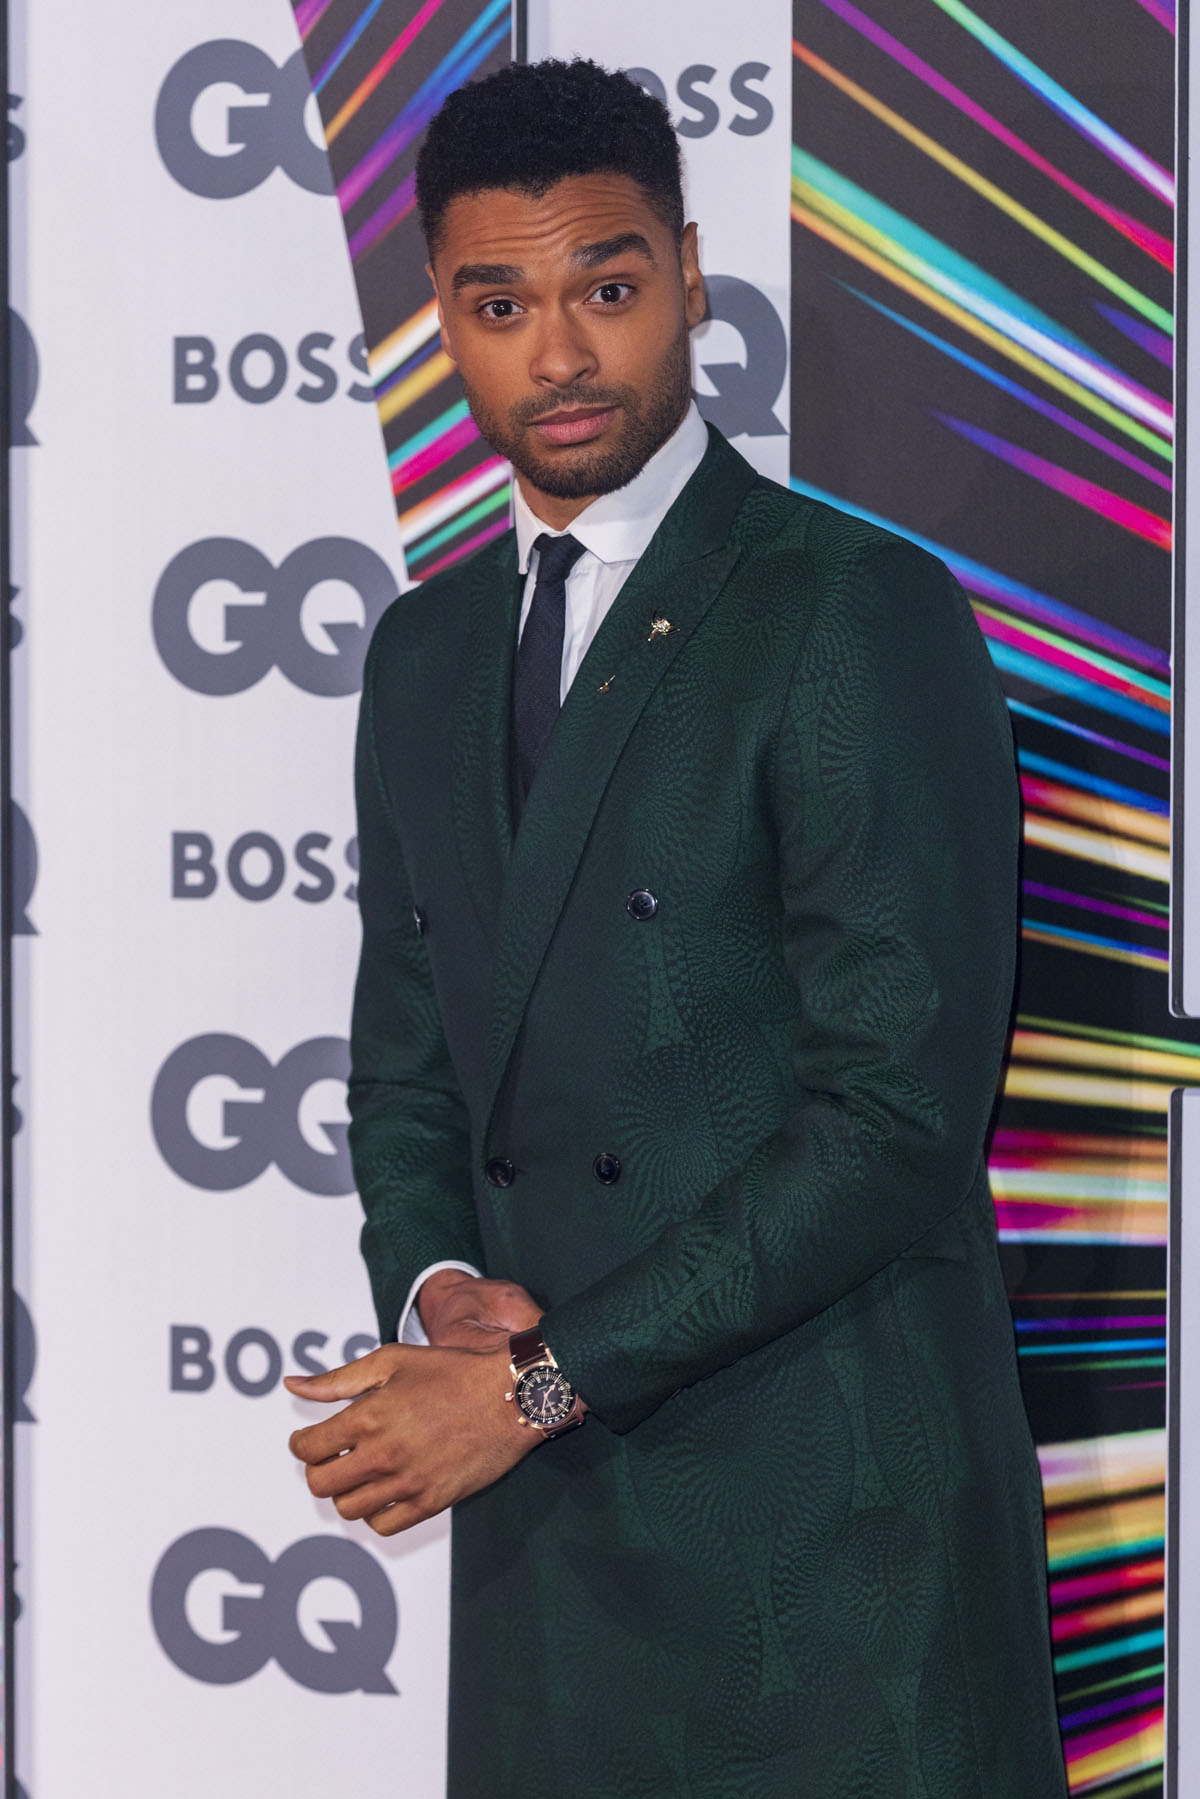 The 24th GQ Men of the Year Awards in association with BOSS at Tate Modern, London, UK